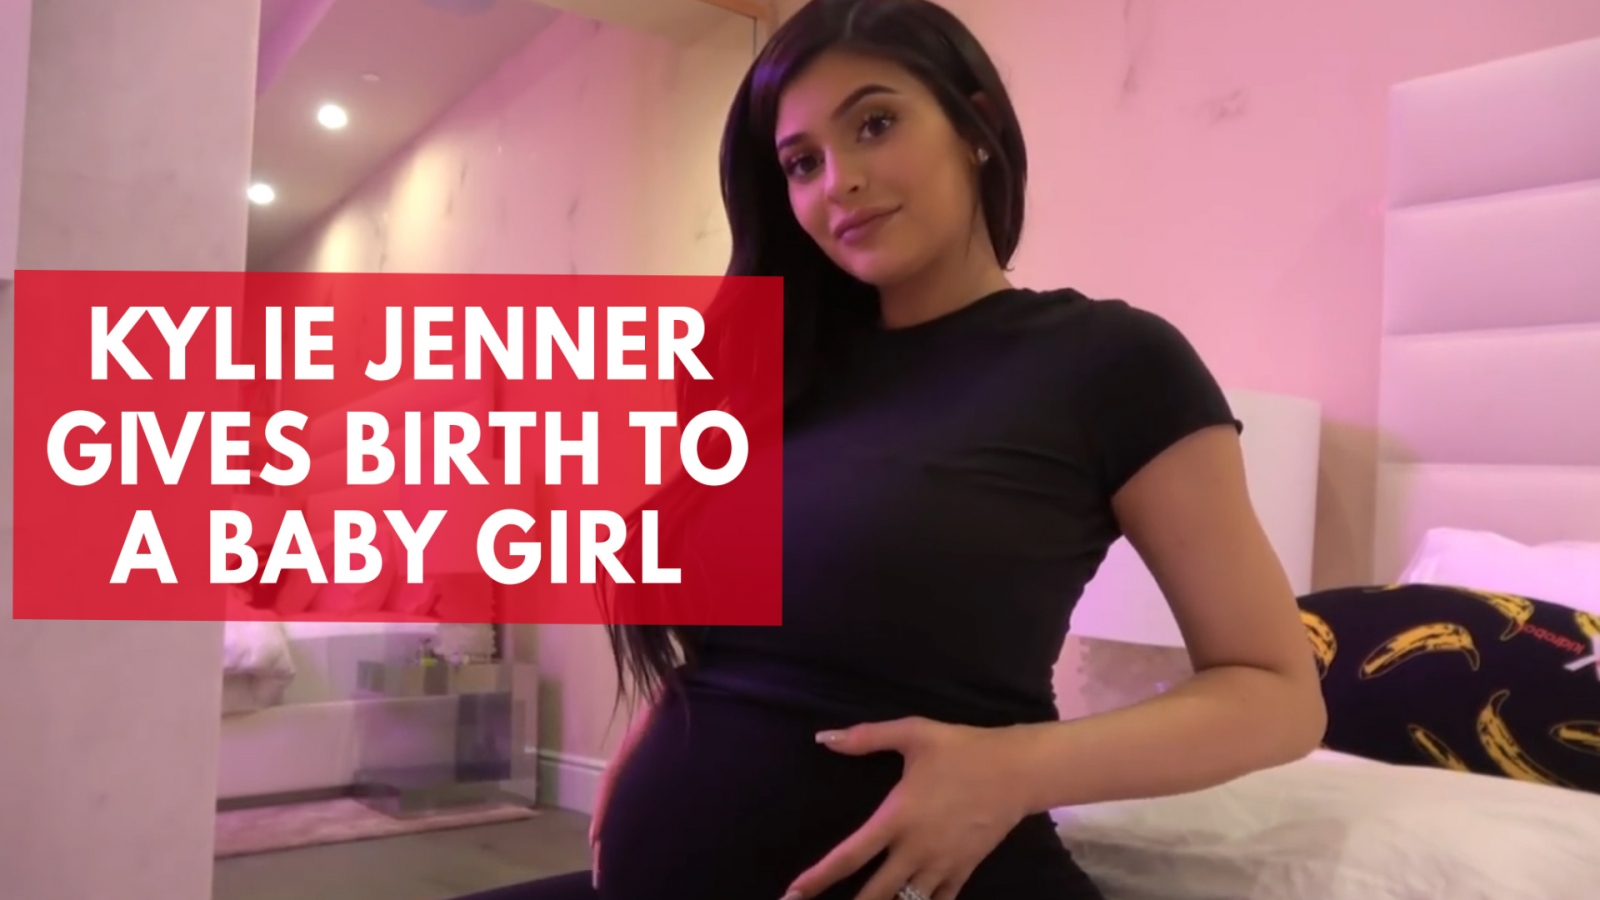 kylie-jenner-gives-birth-to-baby-girl